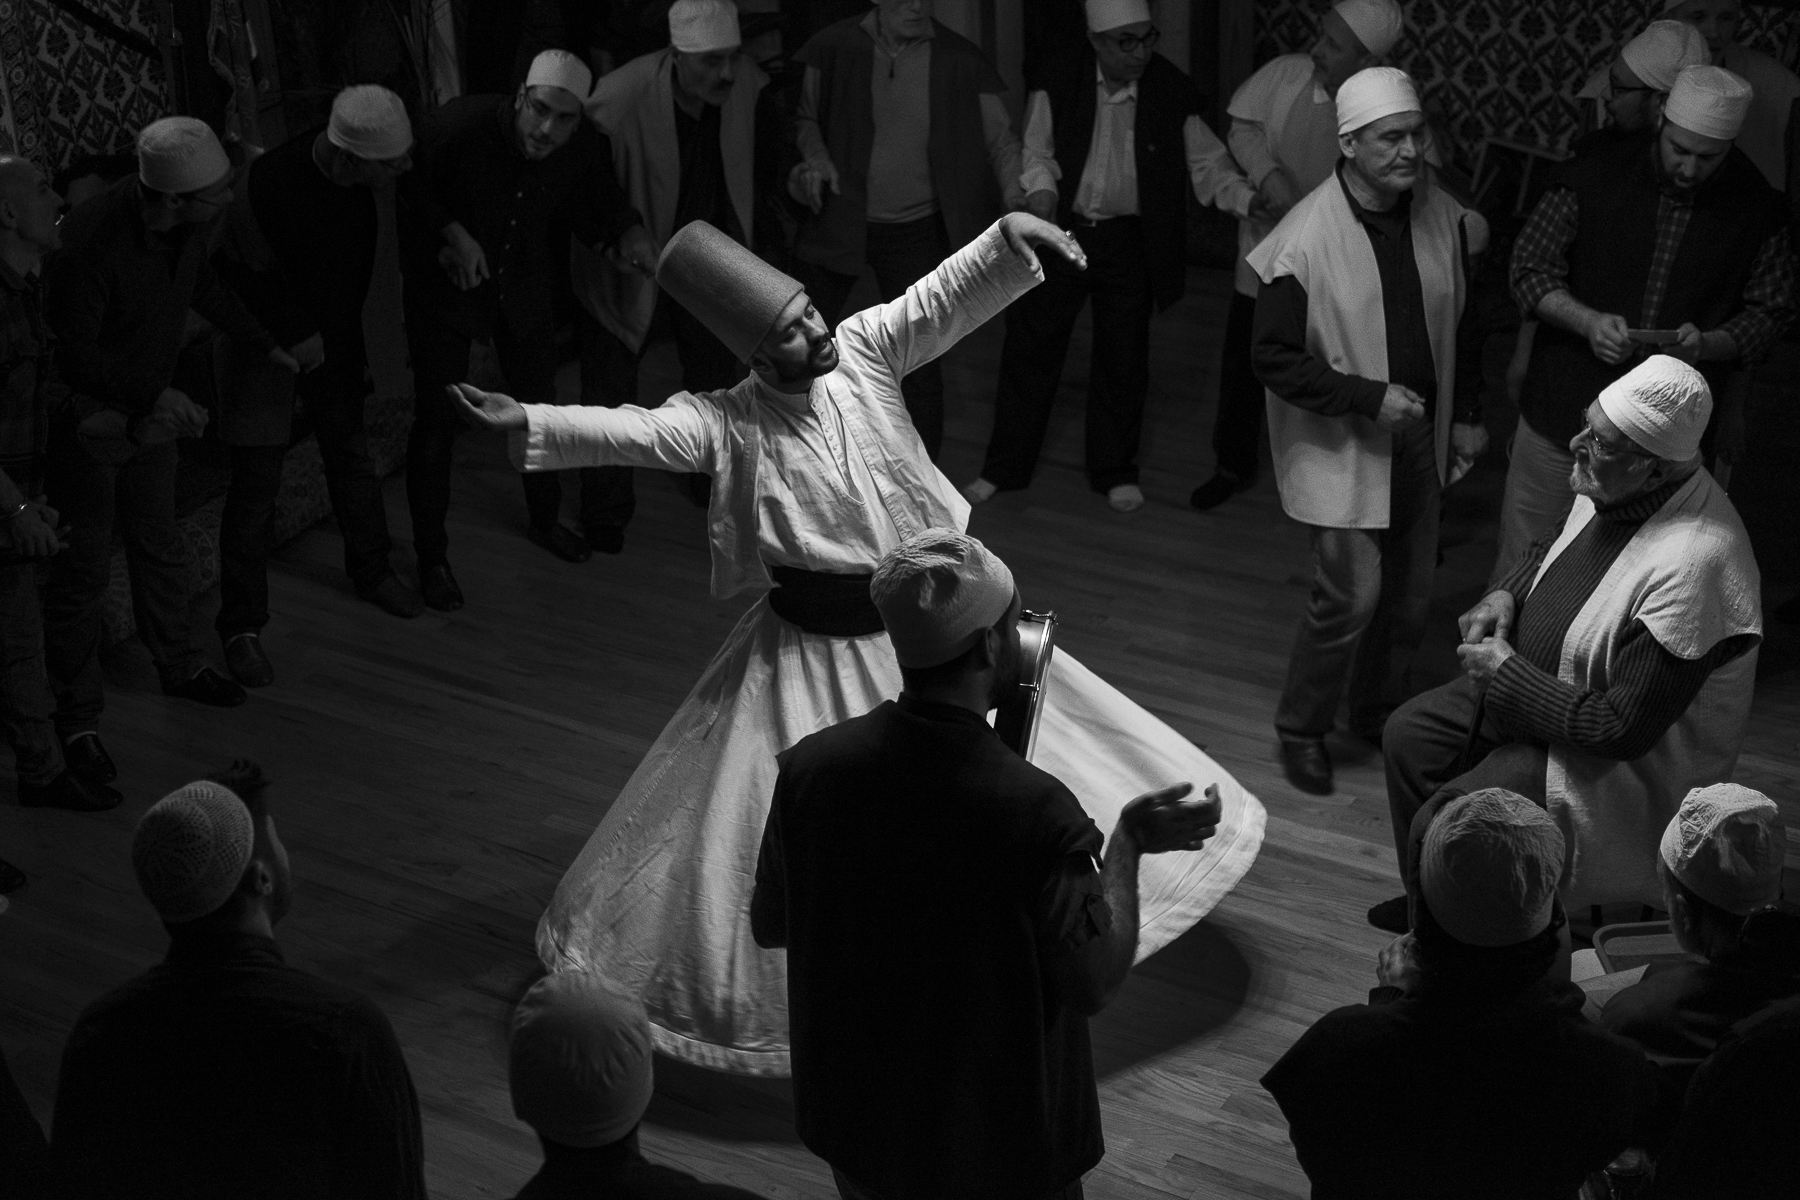 A whirling dervish from Istanbul performs during the Zikr ceremony. The members of the Jerrahi Order of America meet every Saturday night for dinner, prayers and special ceremonies, including the Zikr. Sheikh Tosun Bayrak, 90, conducts the Zikr ceremony from a seated position.